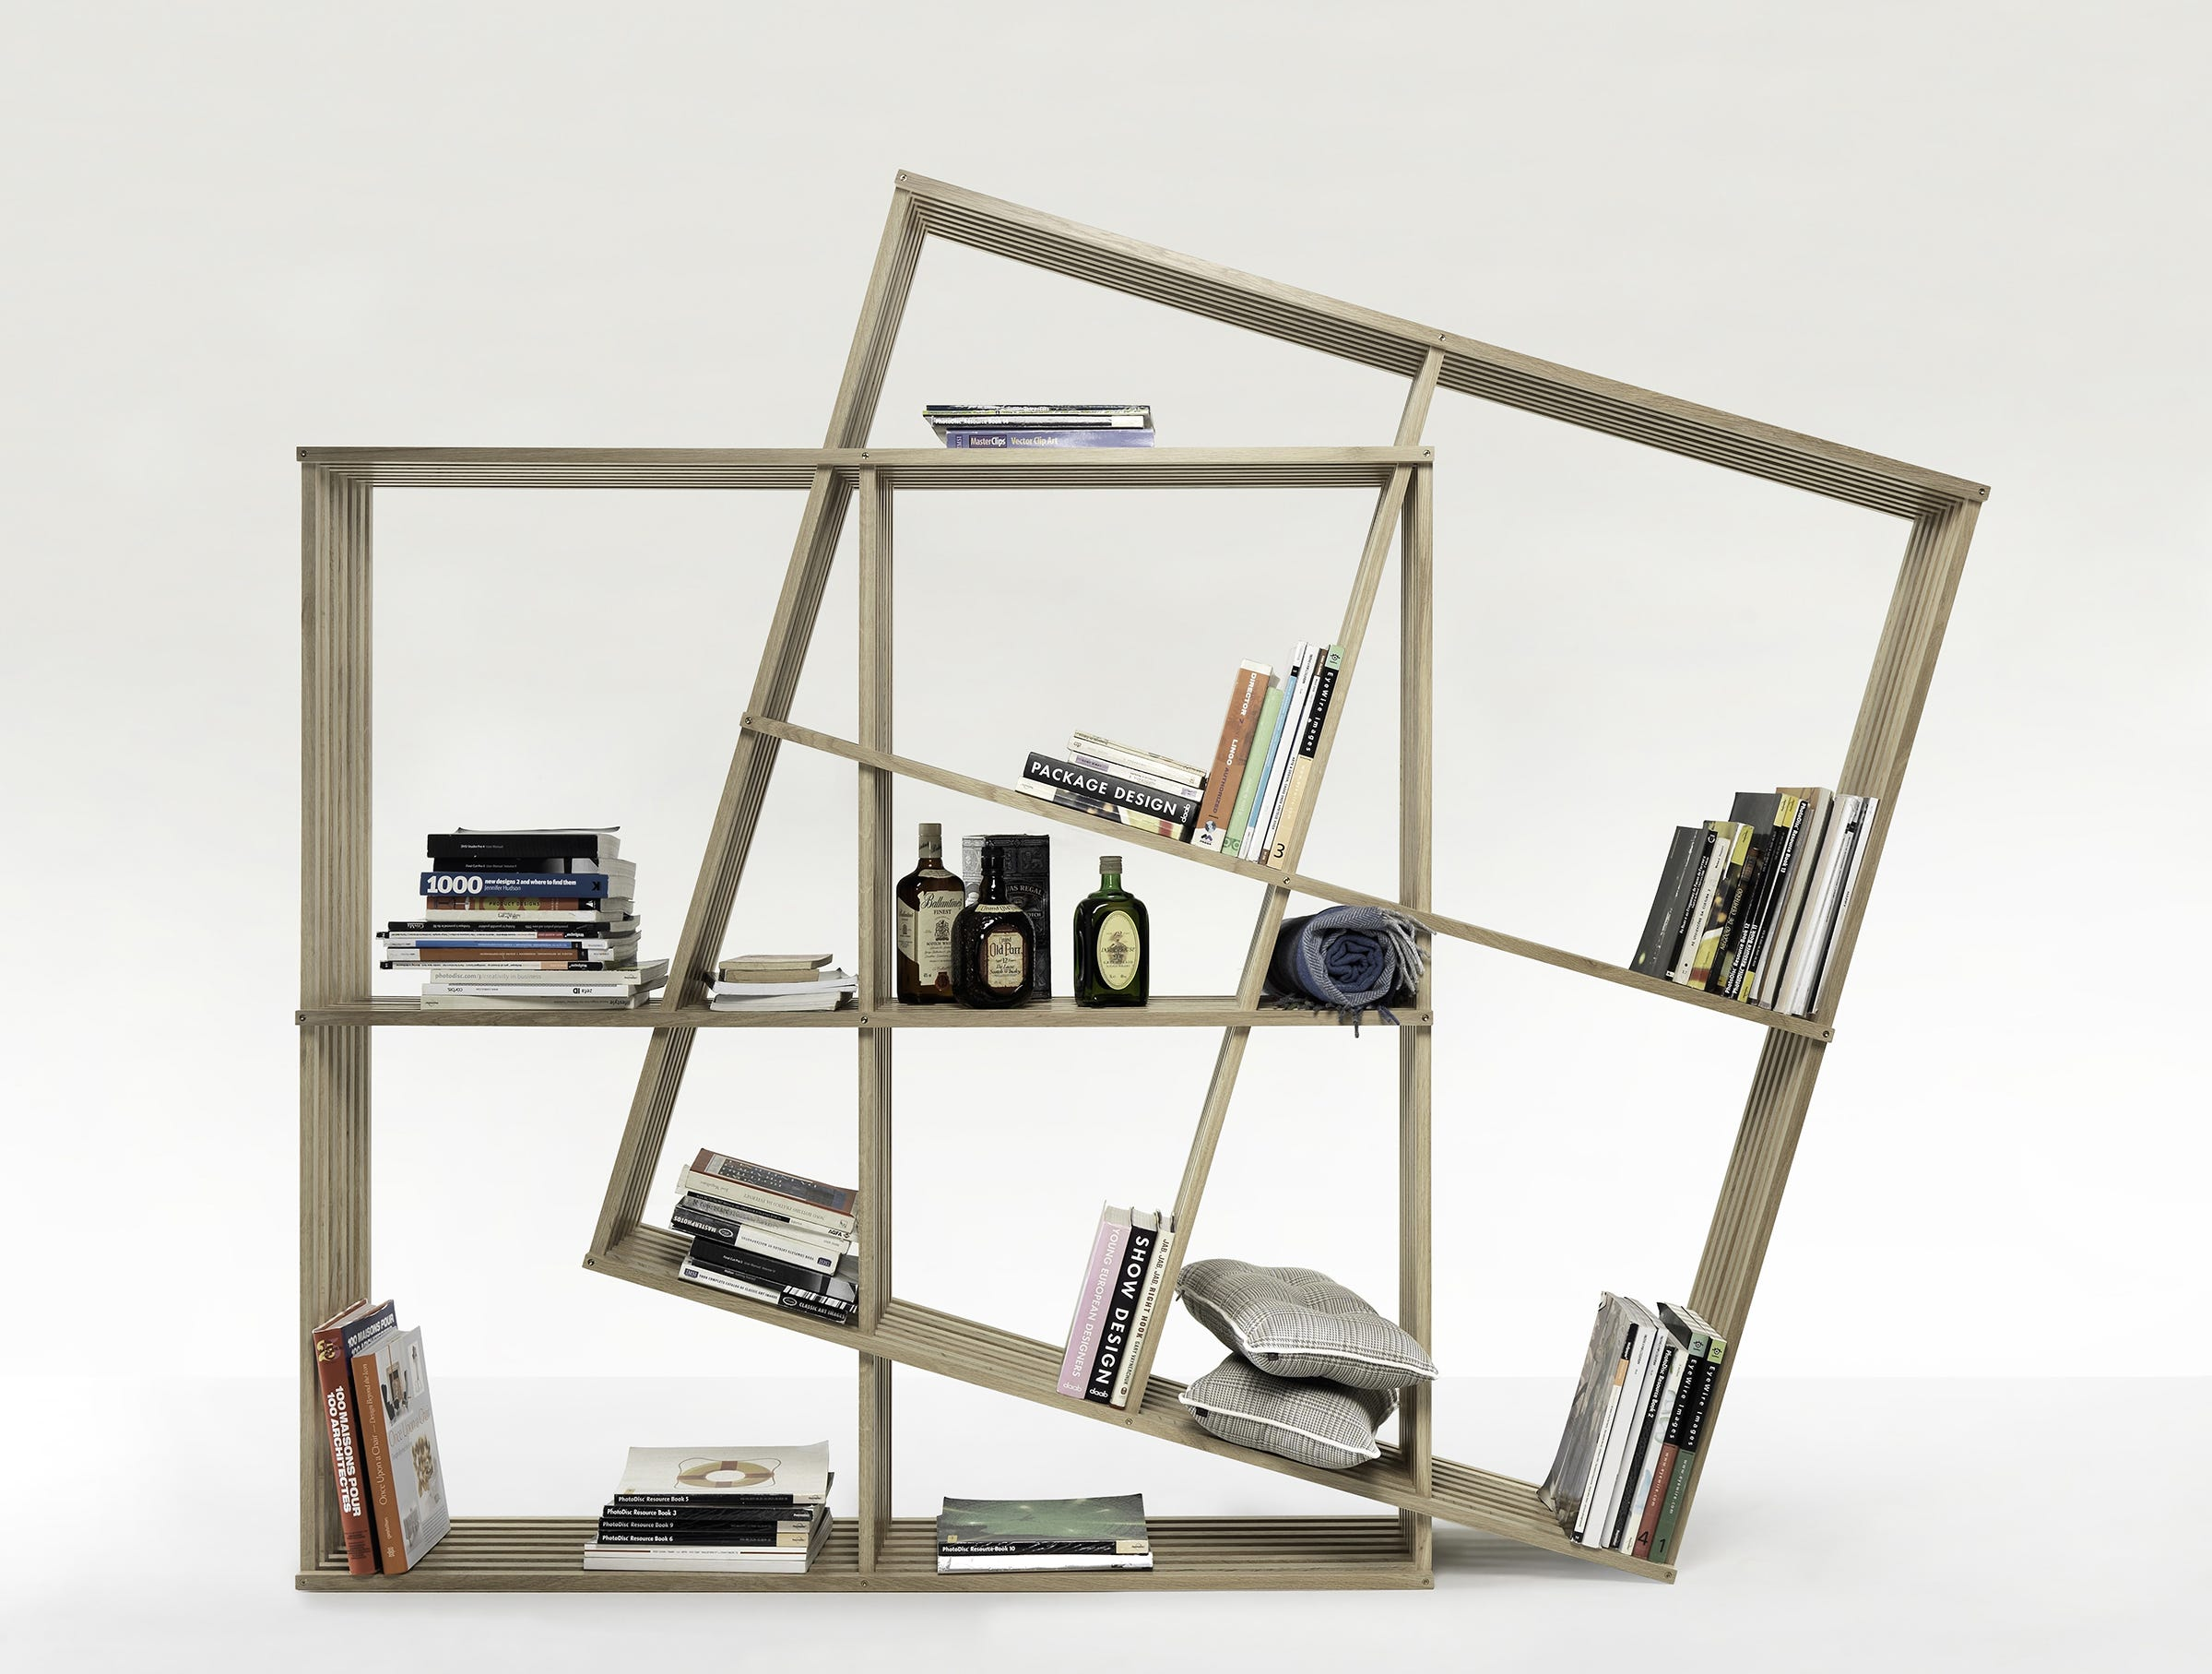 A pair of intersecting bookshelves of equal size allow you to tilt, if you want an avant-garde aesthetic. The Portuguese joinery brand Wewood won an innovation award for this X2 open bookcase designed by Laurindo Marta.